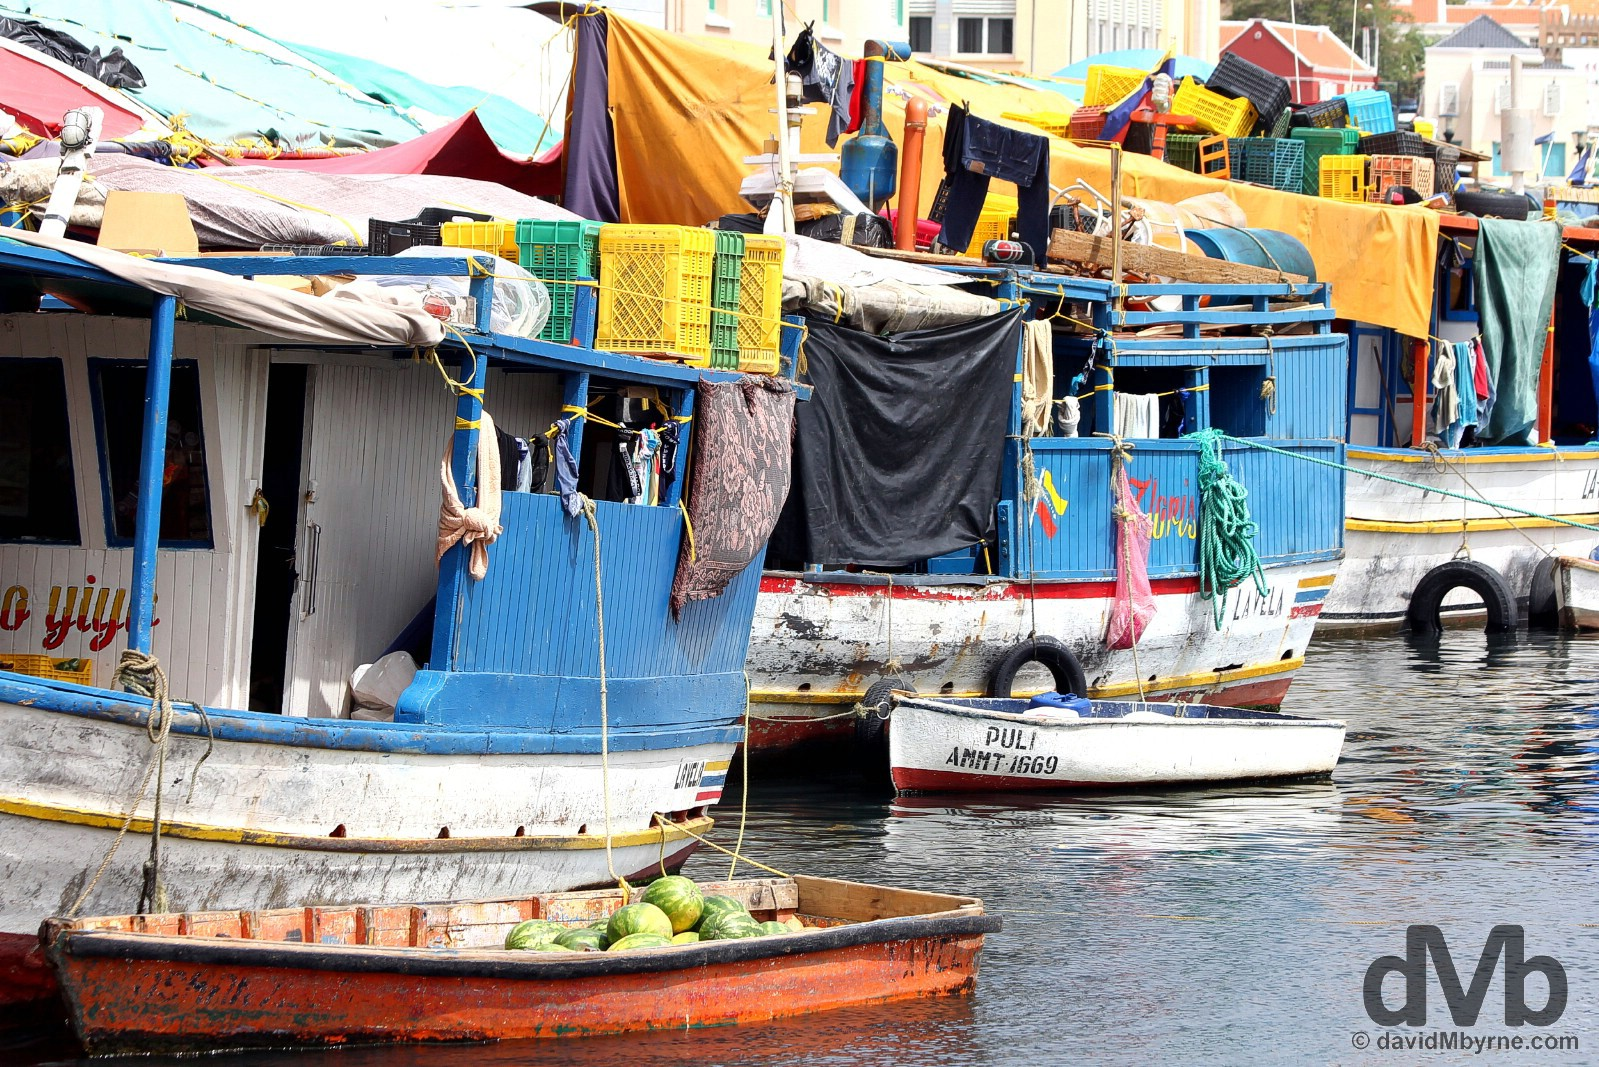 The Floating market in Willemstad, Curacao, Lesser Antilles. June 20, 2015.